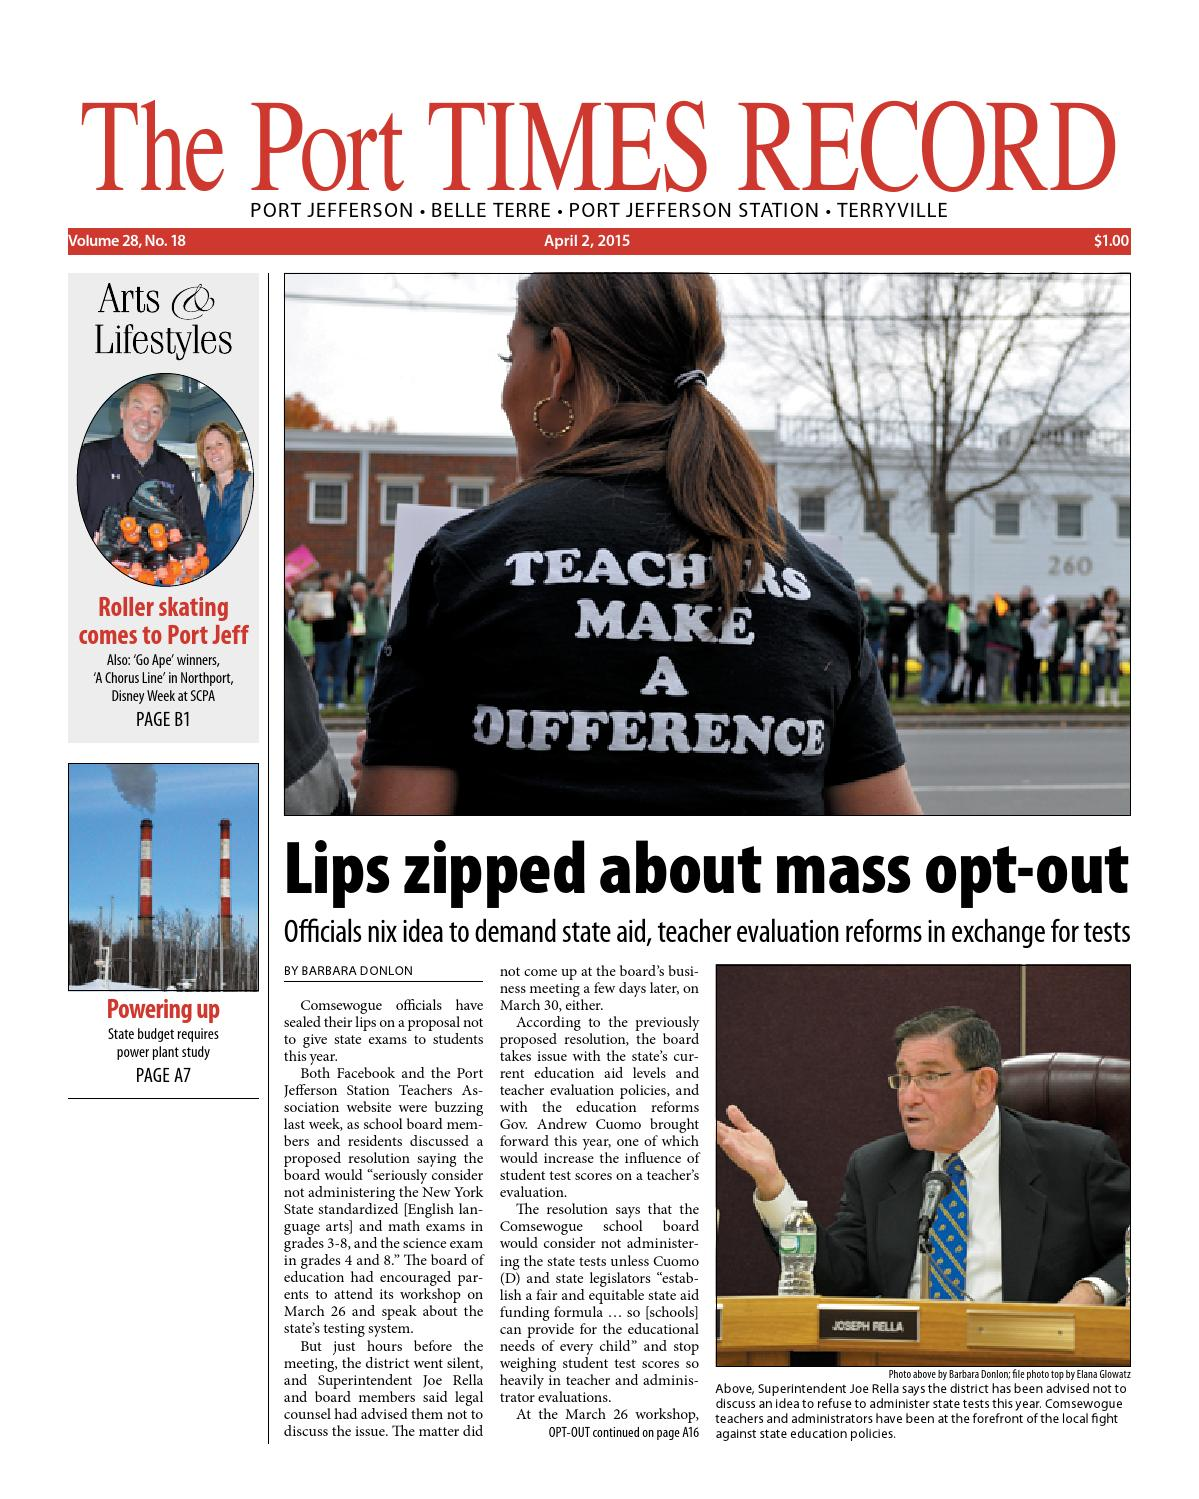 The port times record april 2 2015 by tbr news media issuu fandeluxe Choice Image